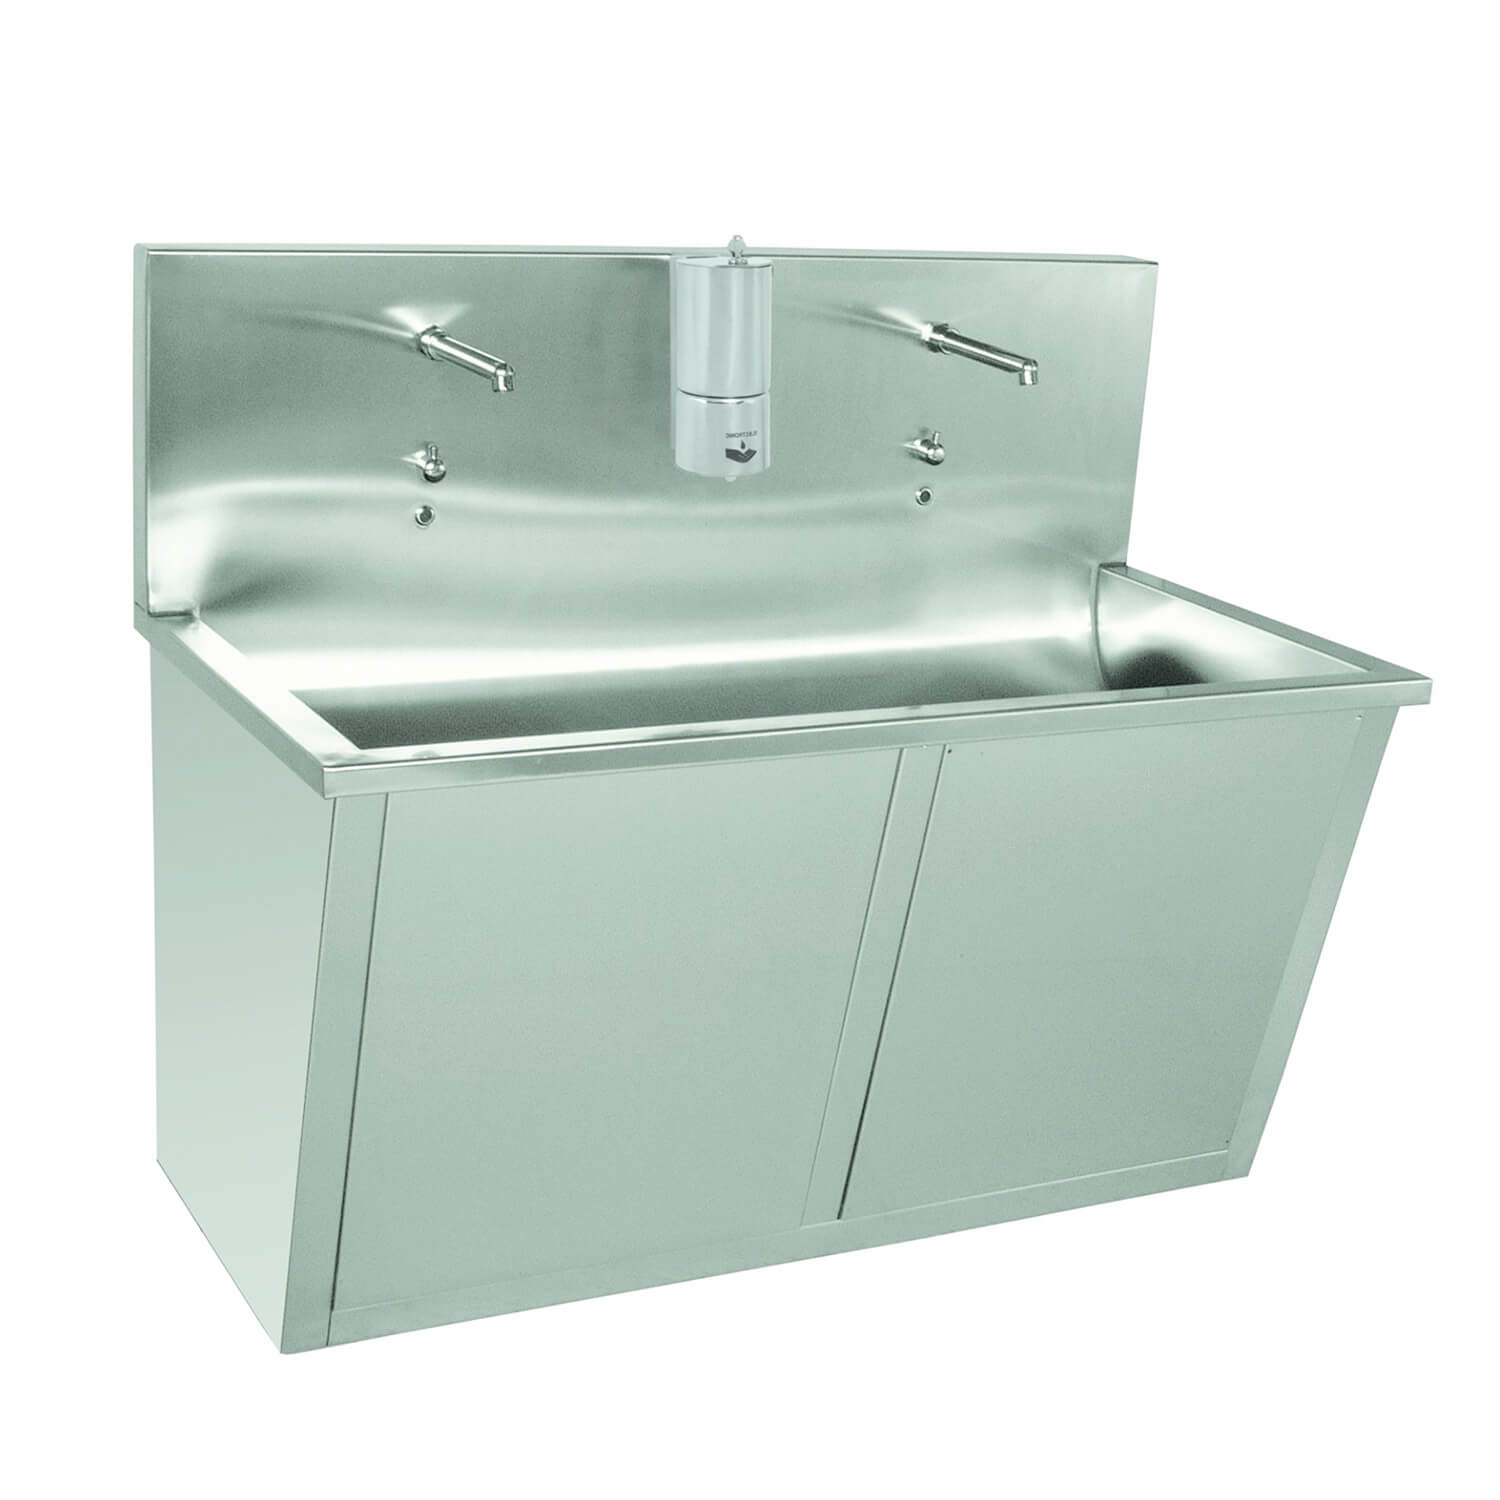 Double Bay Scrub Sink